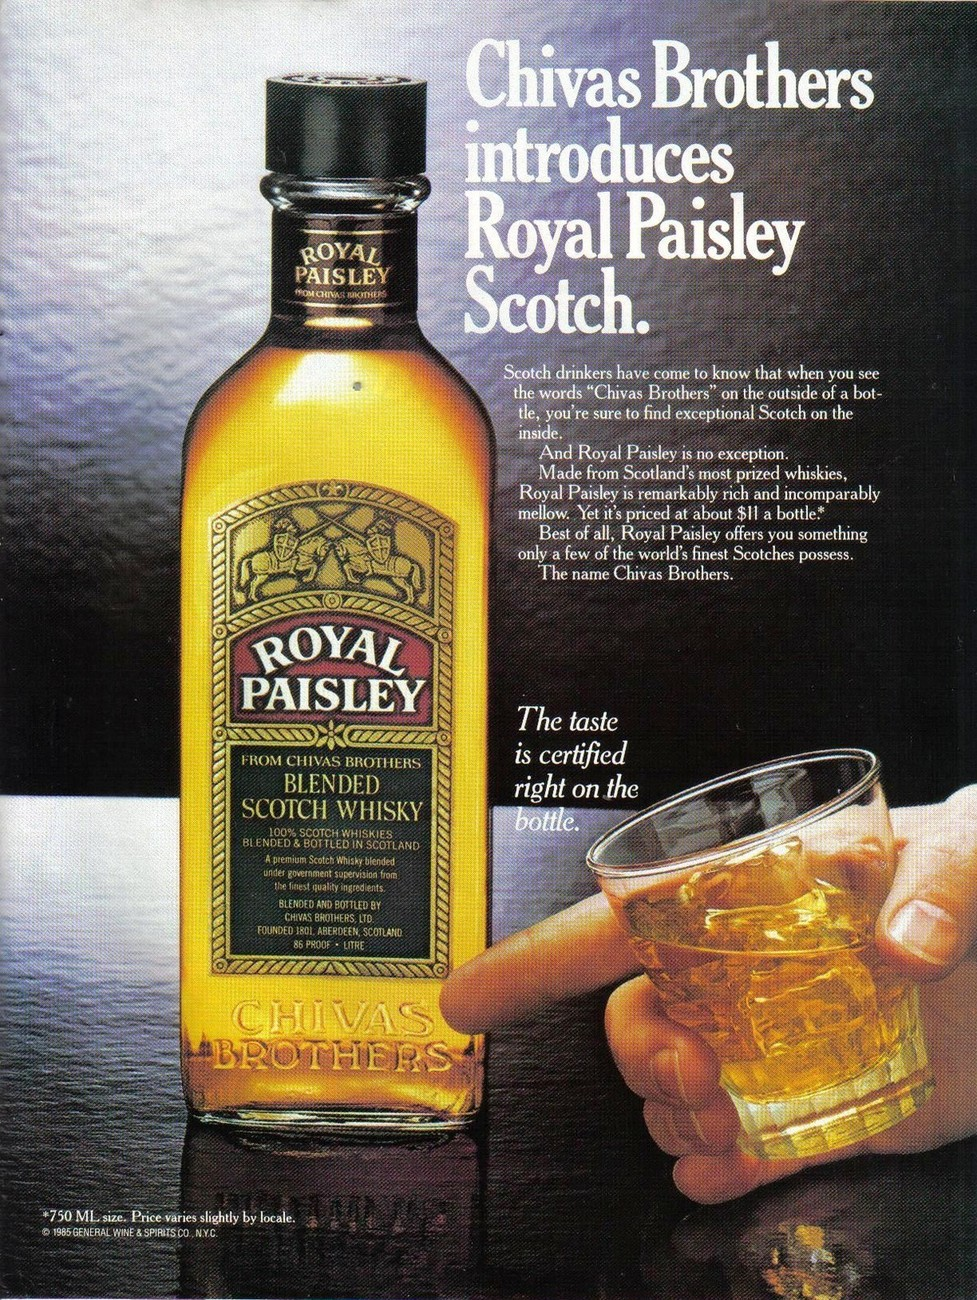 Primary image for Chivas Brothers Royal Paisley Scotch Whisky Print Ad From 1985 Vintage NM